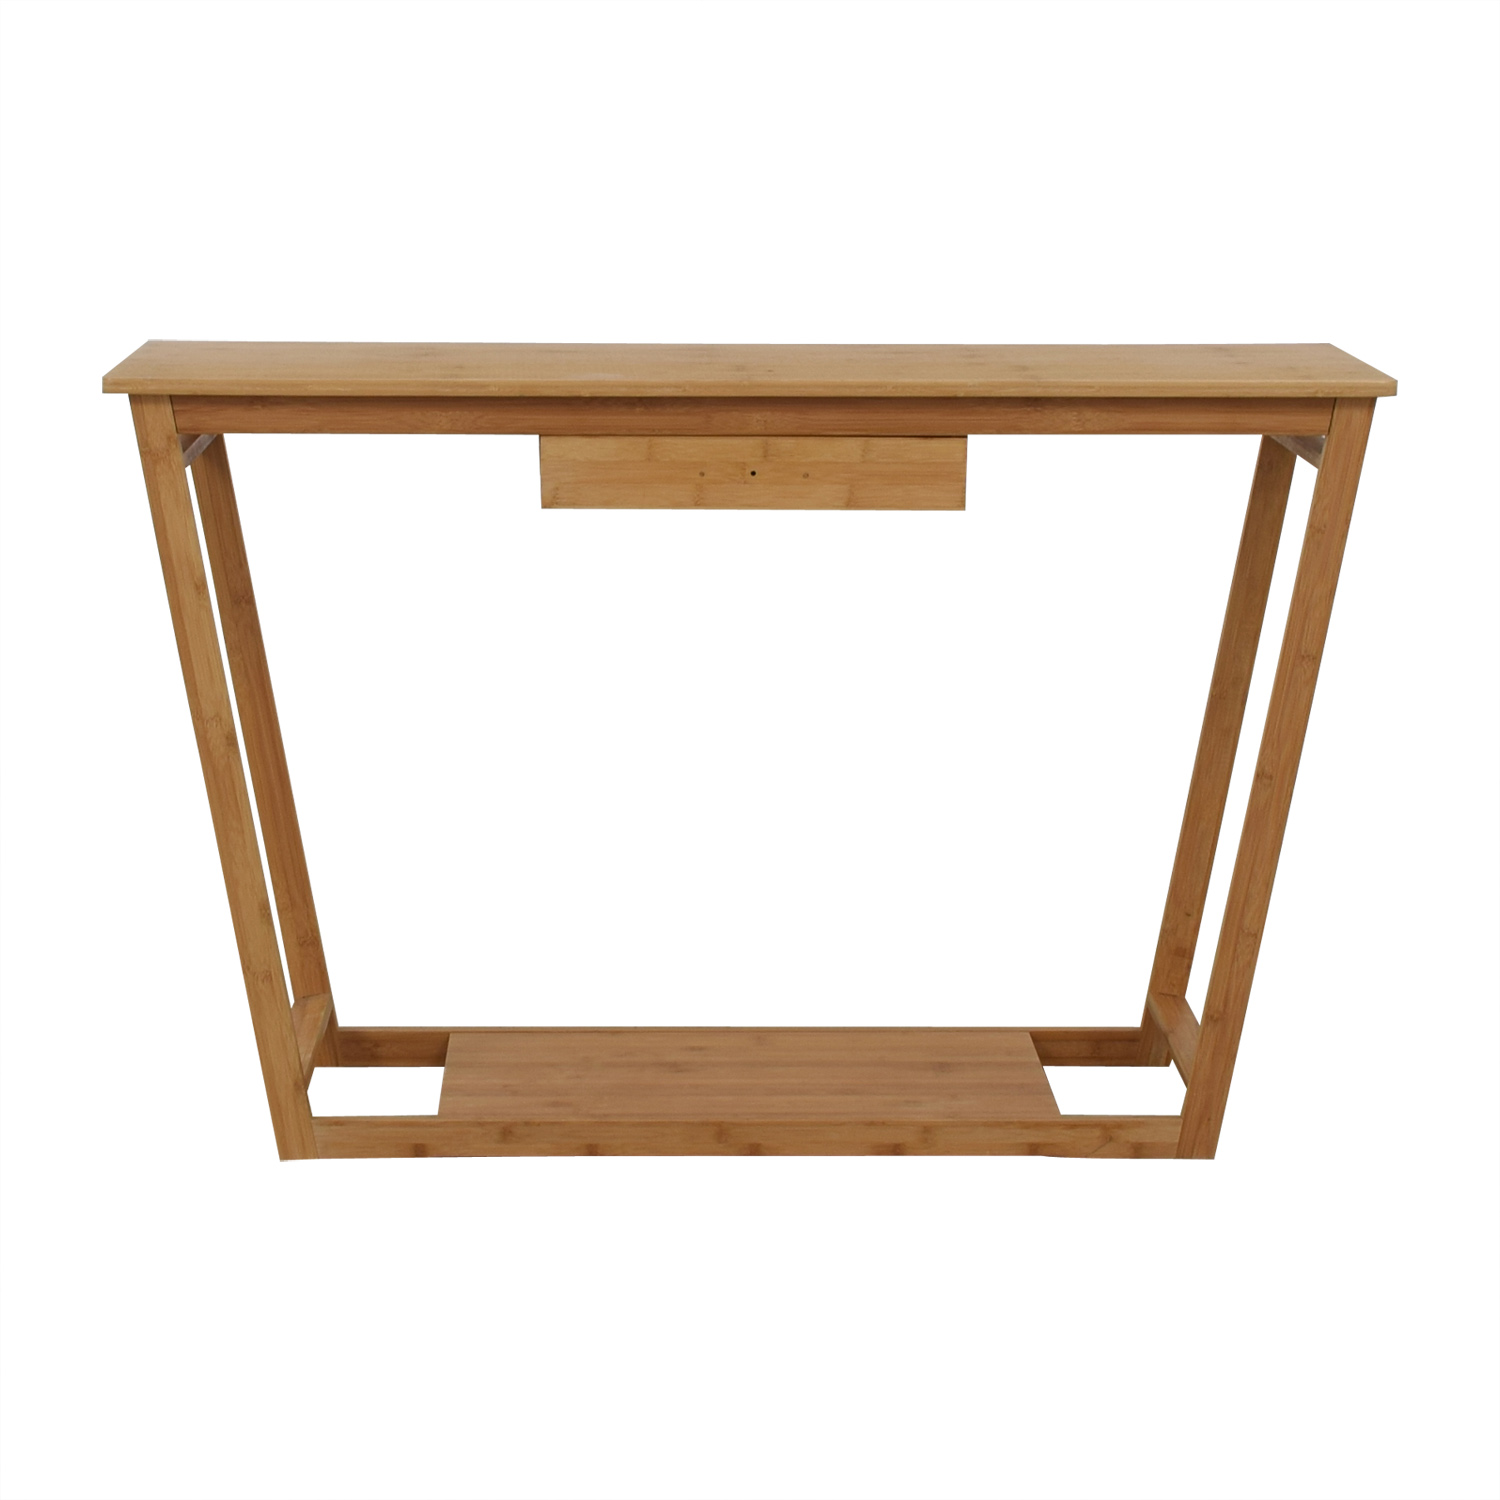 Bamboo Wood Single Drawer Desk or Table for sale